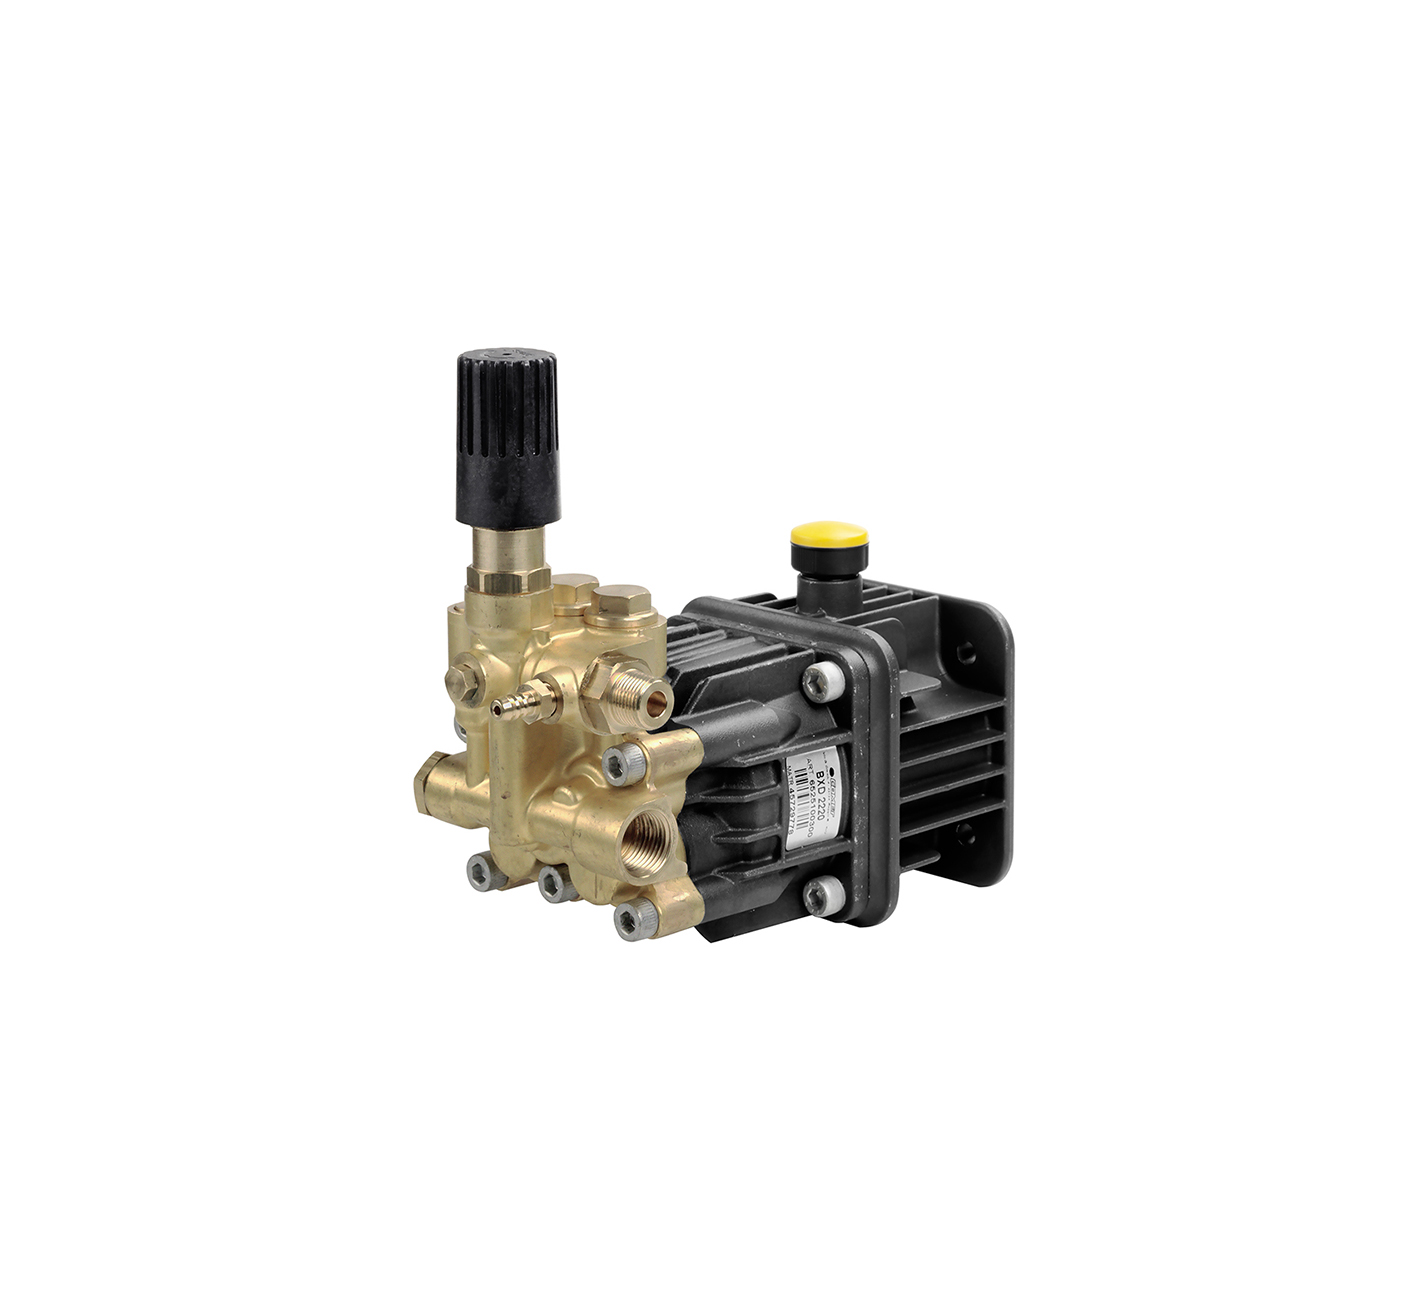 BXD - G 3-4 Comet Industrial Pumps